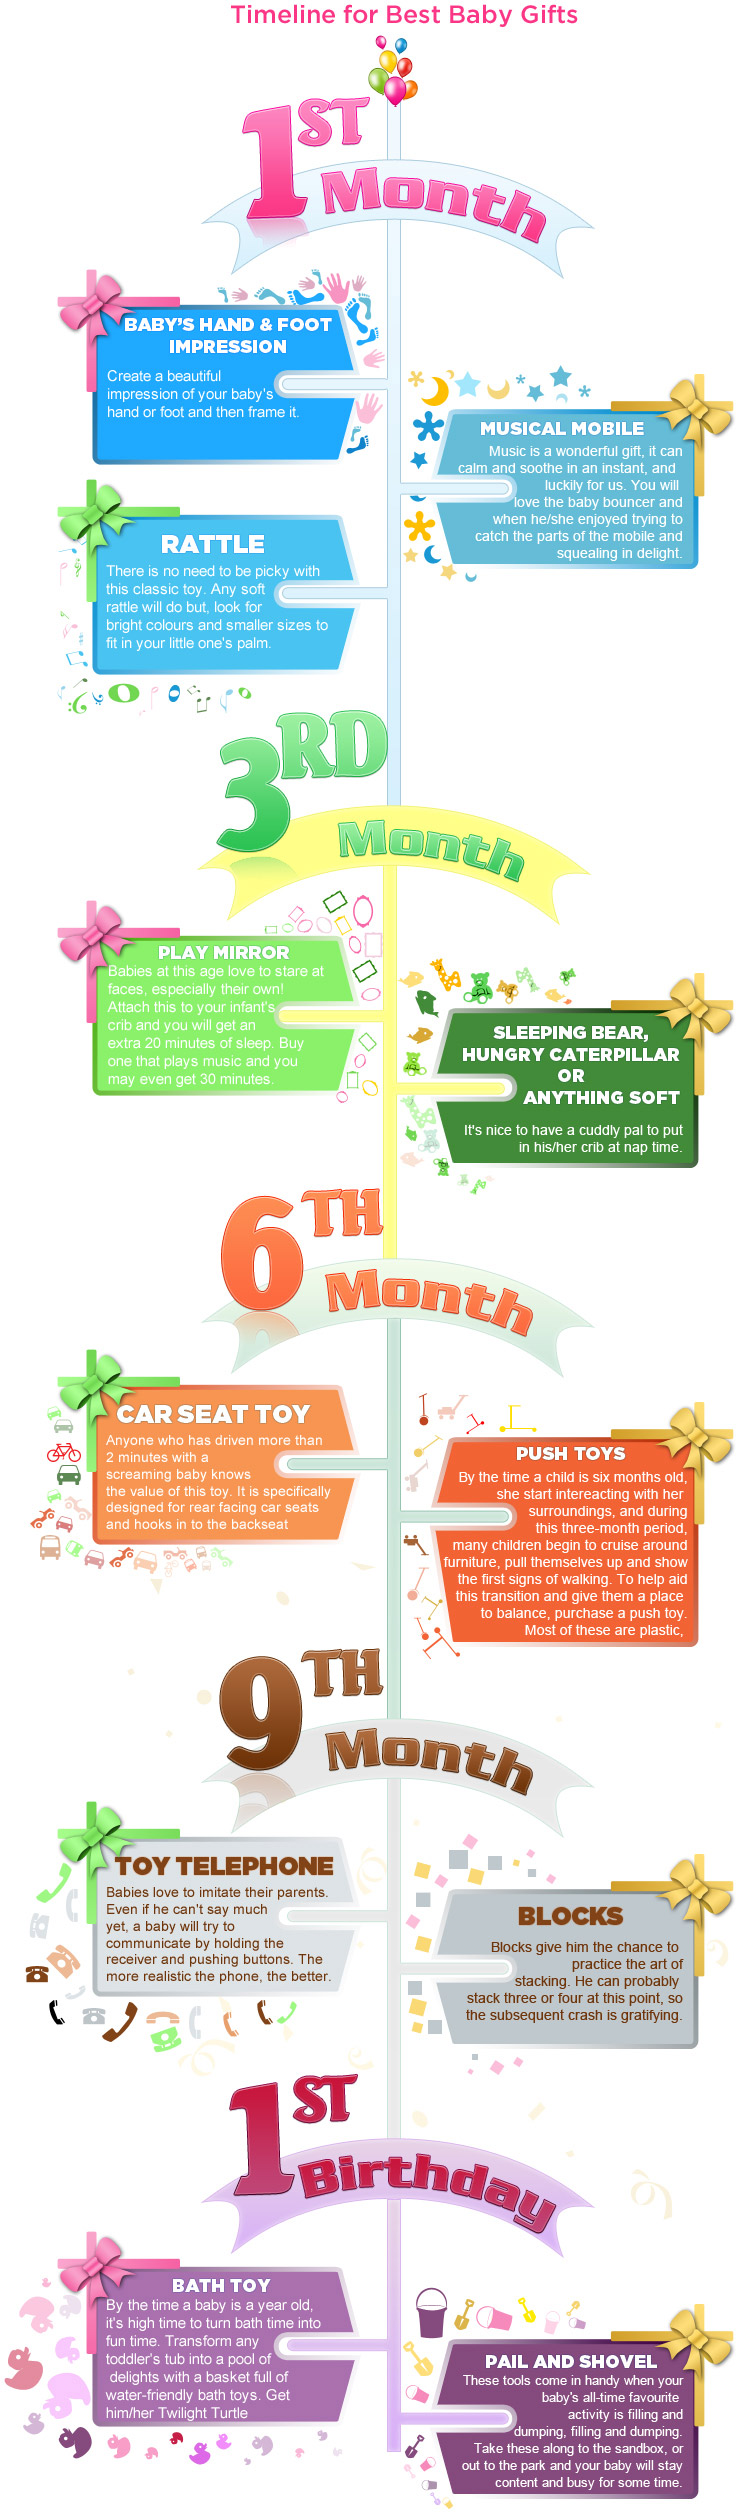 Timeline for Best Baby Gifts